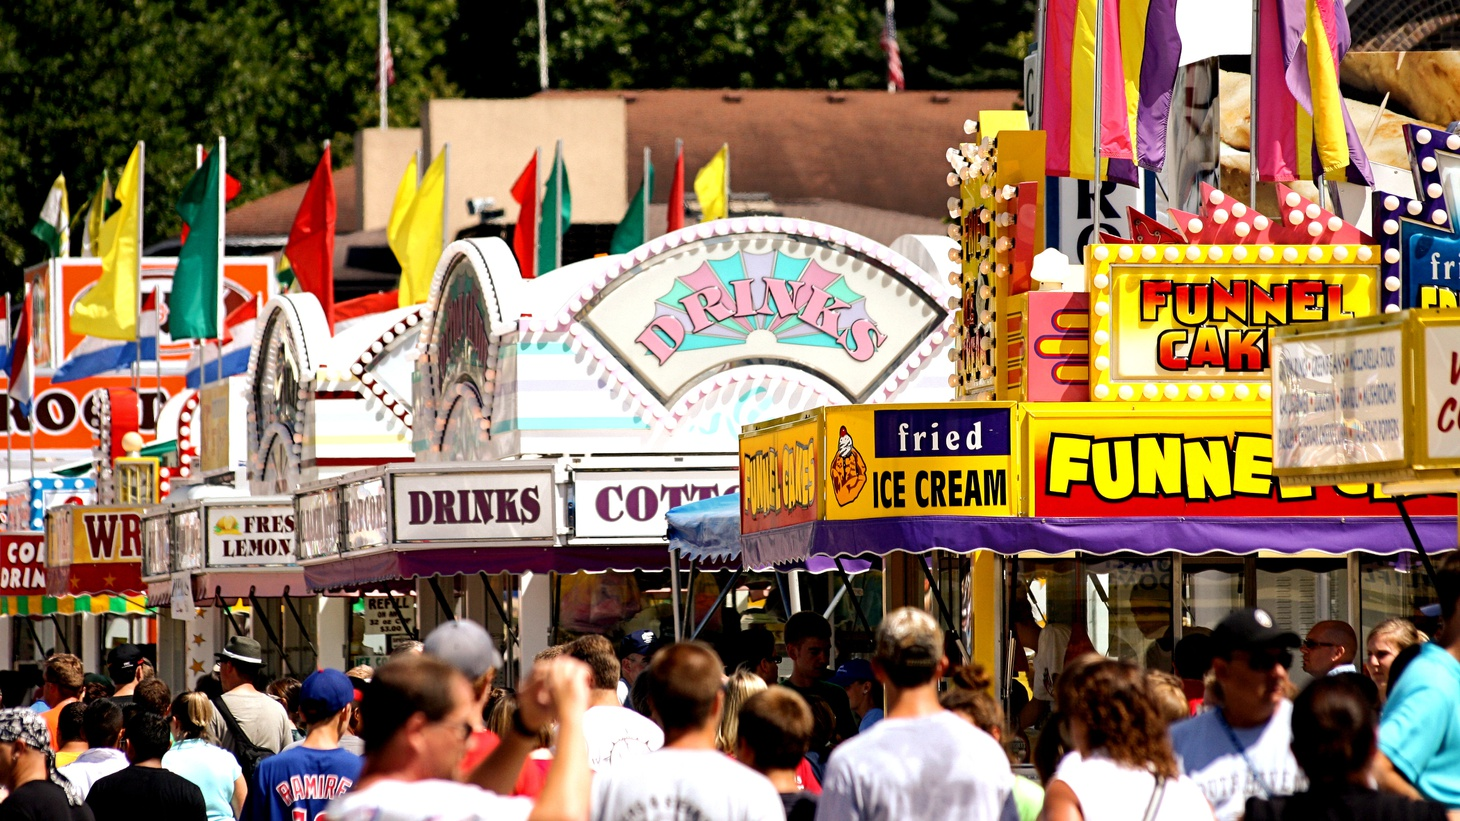 People scouting out their food choices at the Iowa State Fair.